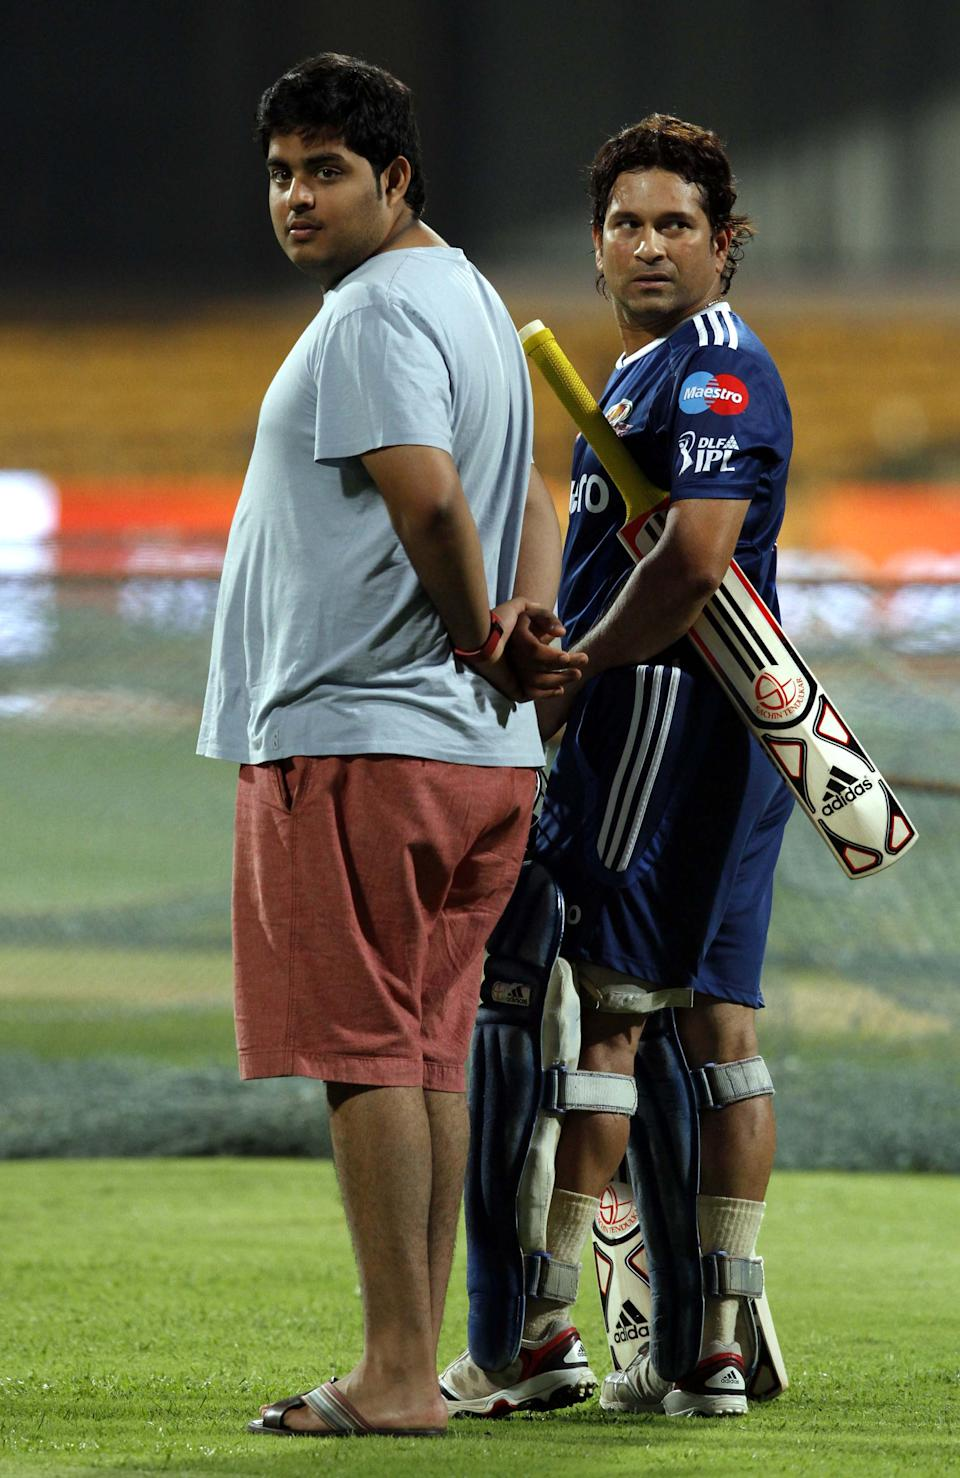 BANGALORE, INDIA - MAY 22: Mumbai Indians Batsman Sachin Tendulkar with Anant Ambani, son of Mukesh Ambani and owner of Mumbai Indians during the team practice session at M Chinnaswamy stadium on May 22, 2012 in Bangalore, India. Chennai Super Kings will play Mumbai Indians in eliminator 1 on May 23, 2012. The winner of this tie will then play Delhi Daredevils to decide the finalist. Kolkata Knight Riders have already qualified for final. (Photo by Virendra Singh Gosain / Hindustan Times via Getty Images)